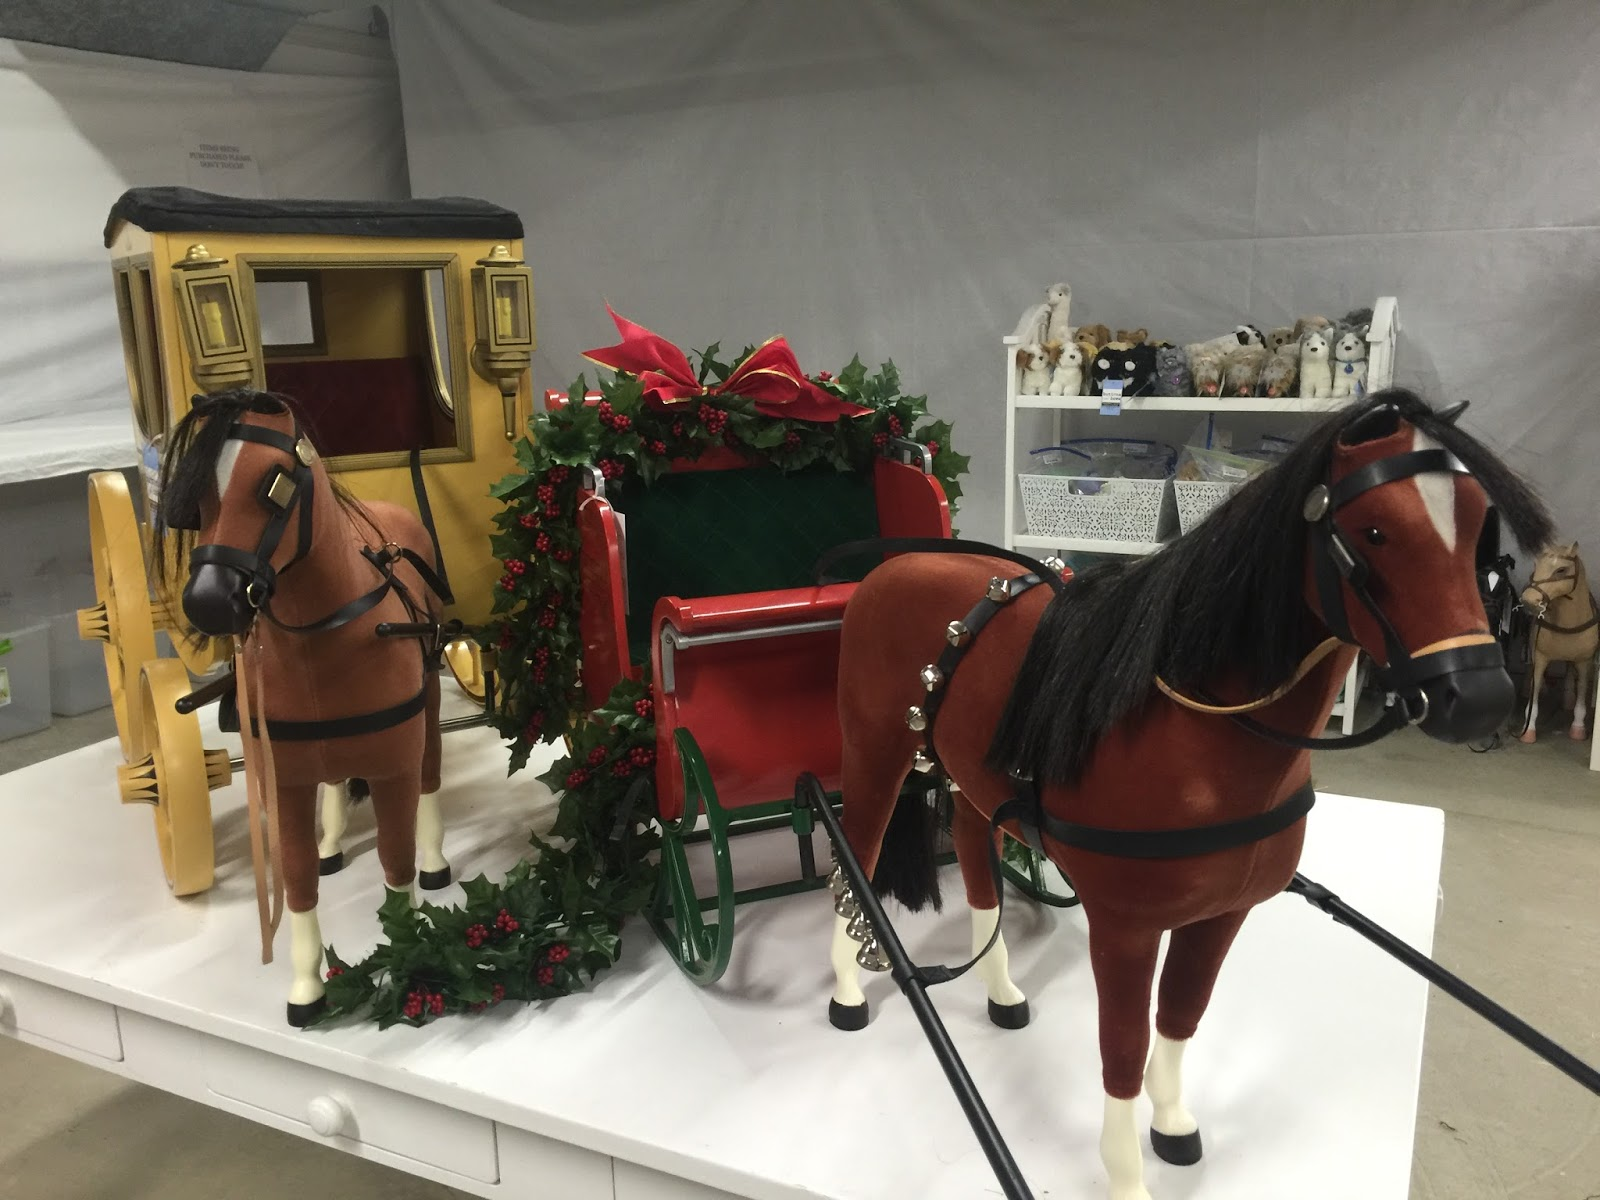 Annual American Girl Event At Buttons And Bows Consignment